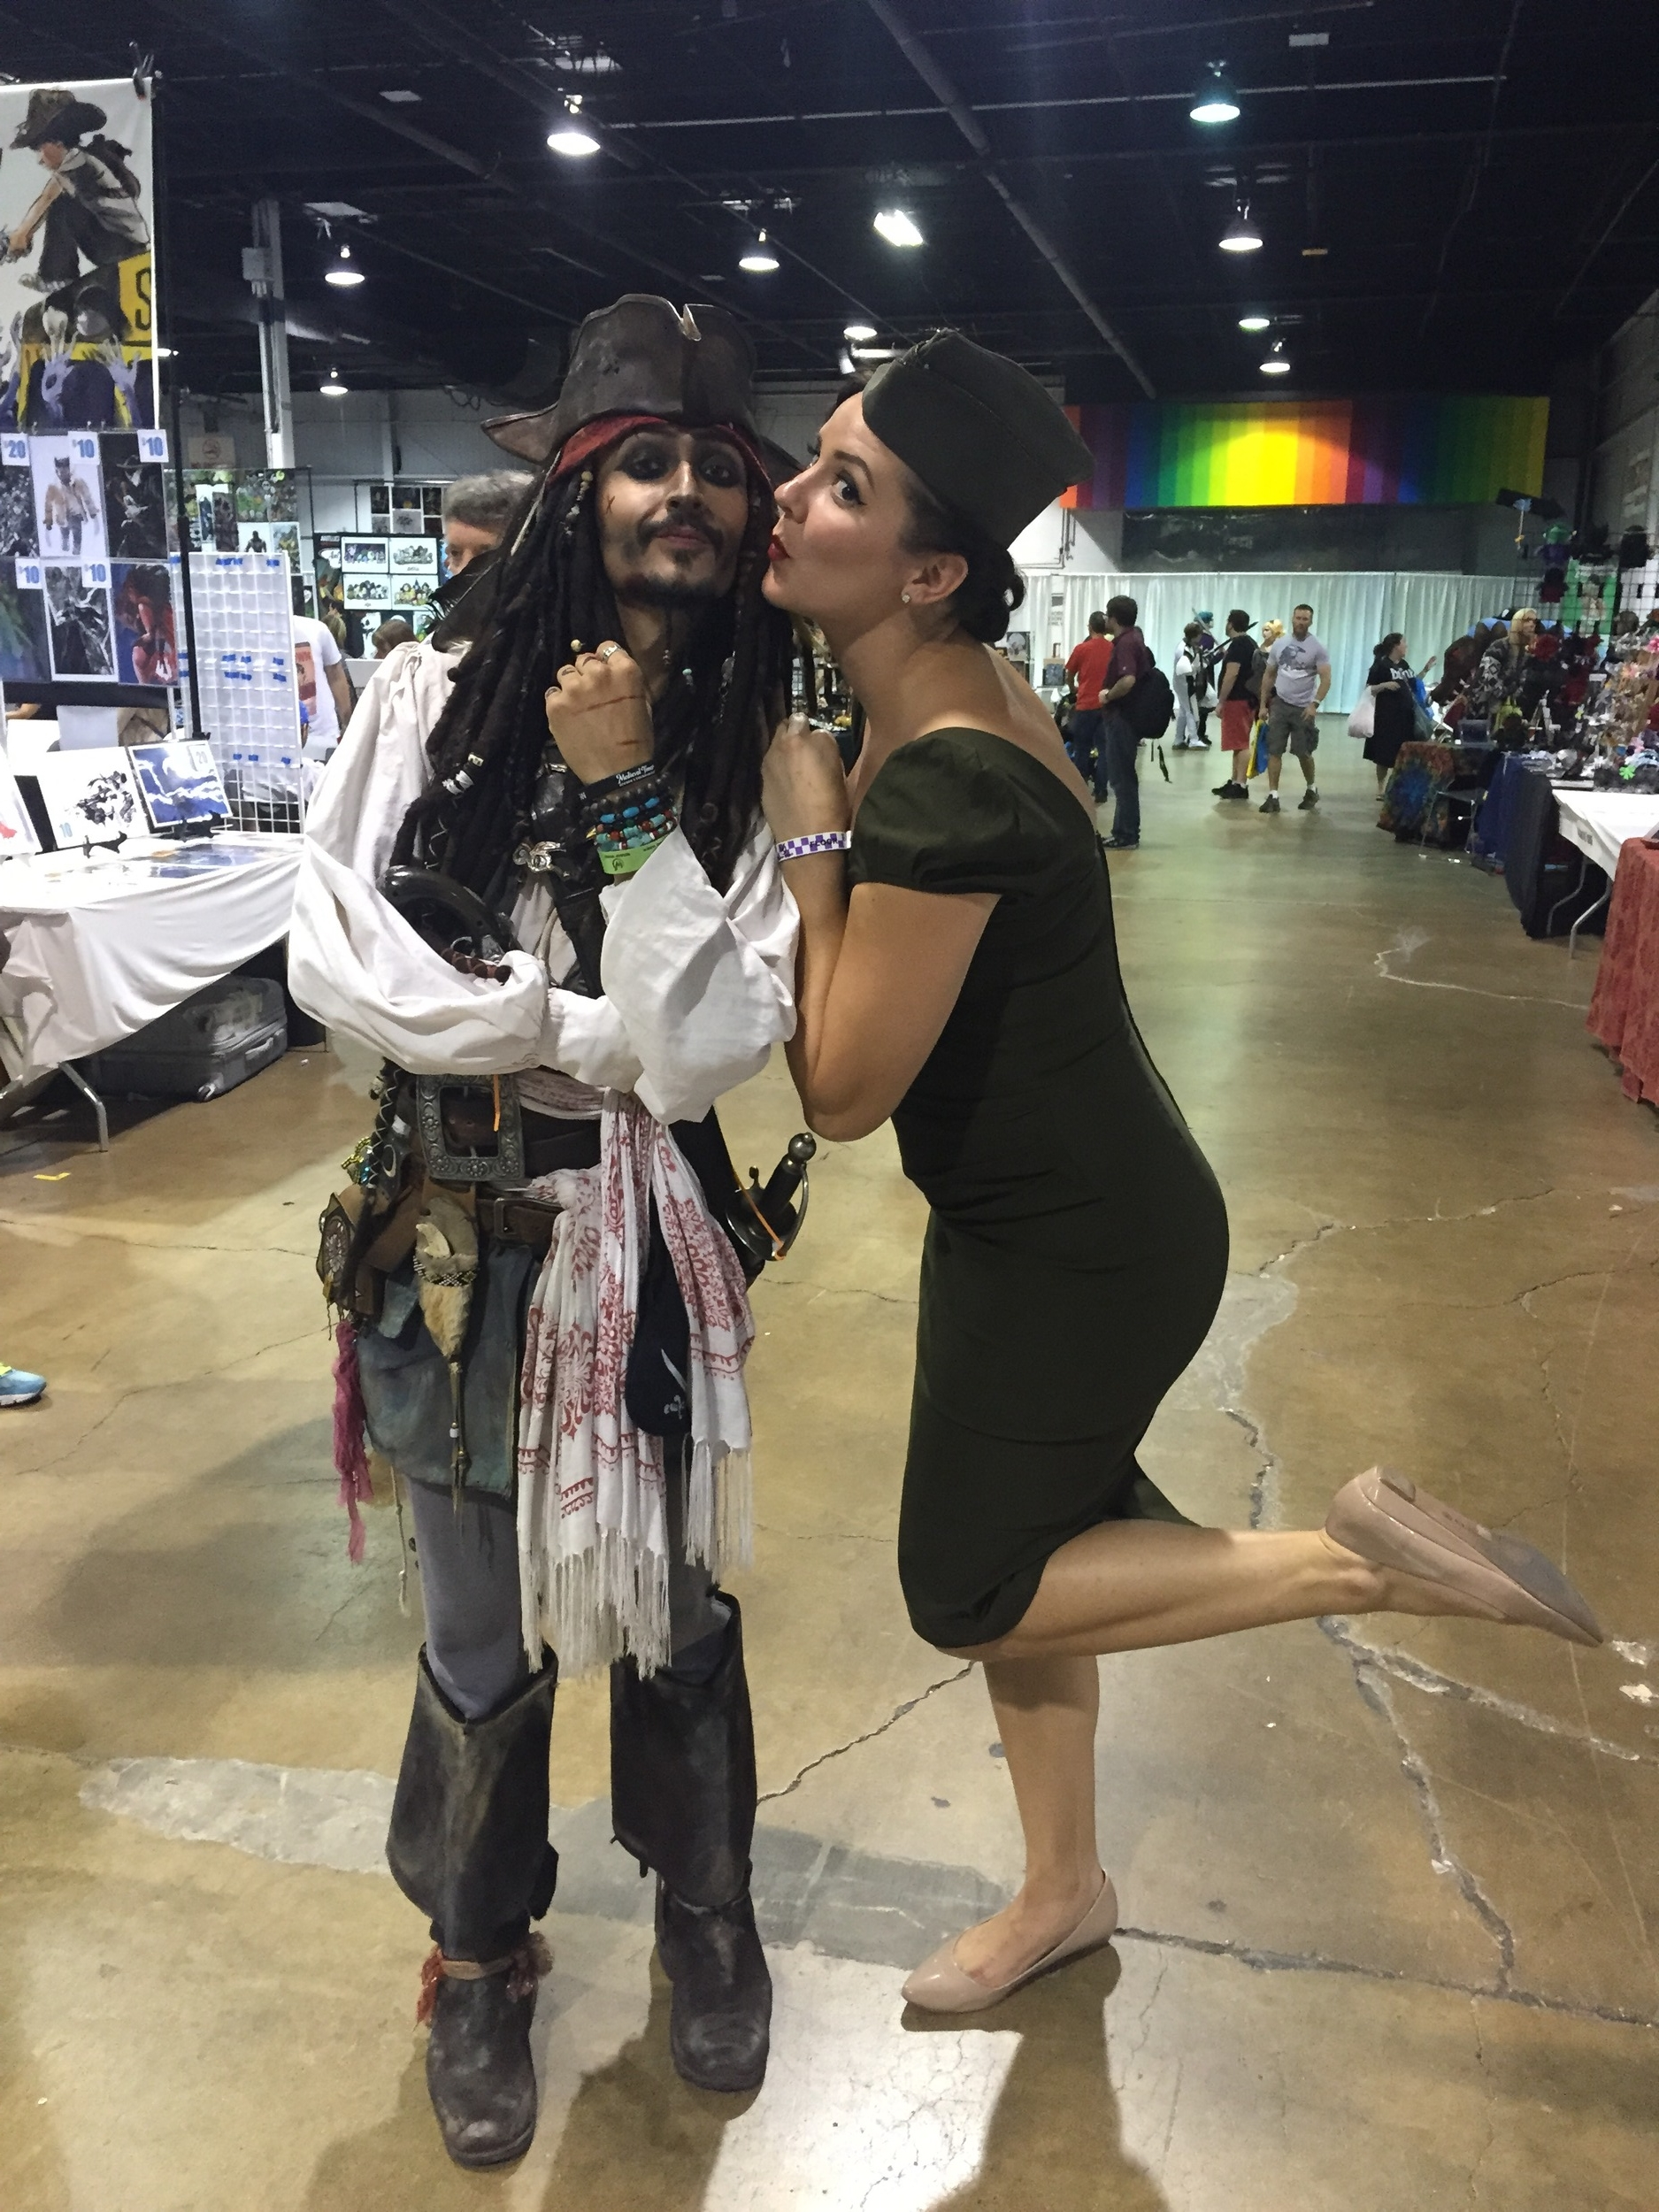 Saucy Jack Sparrow got a kiss from this pinup